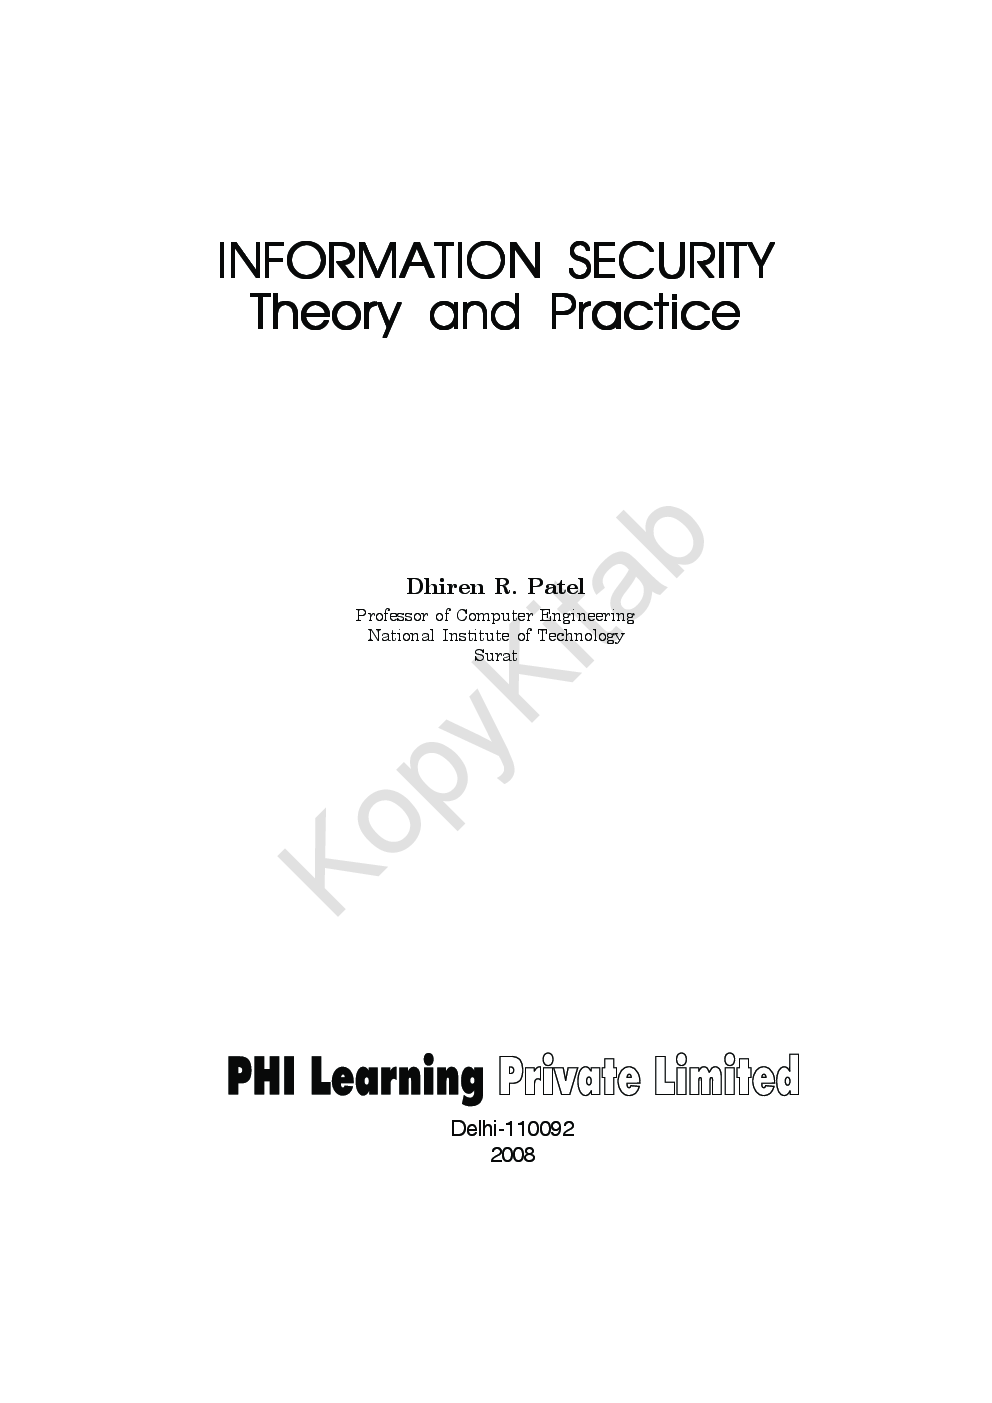 Information Security-Theory And Practice - Page 2